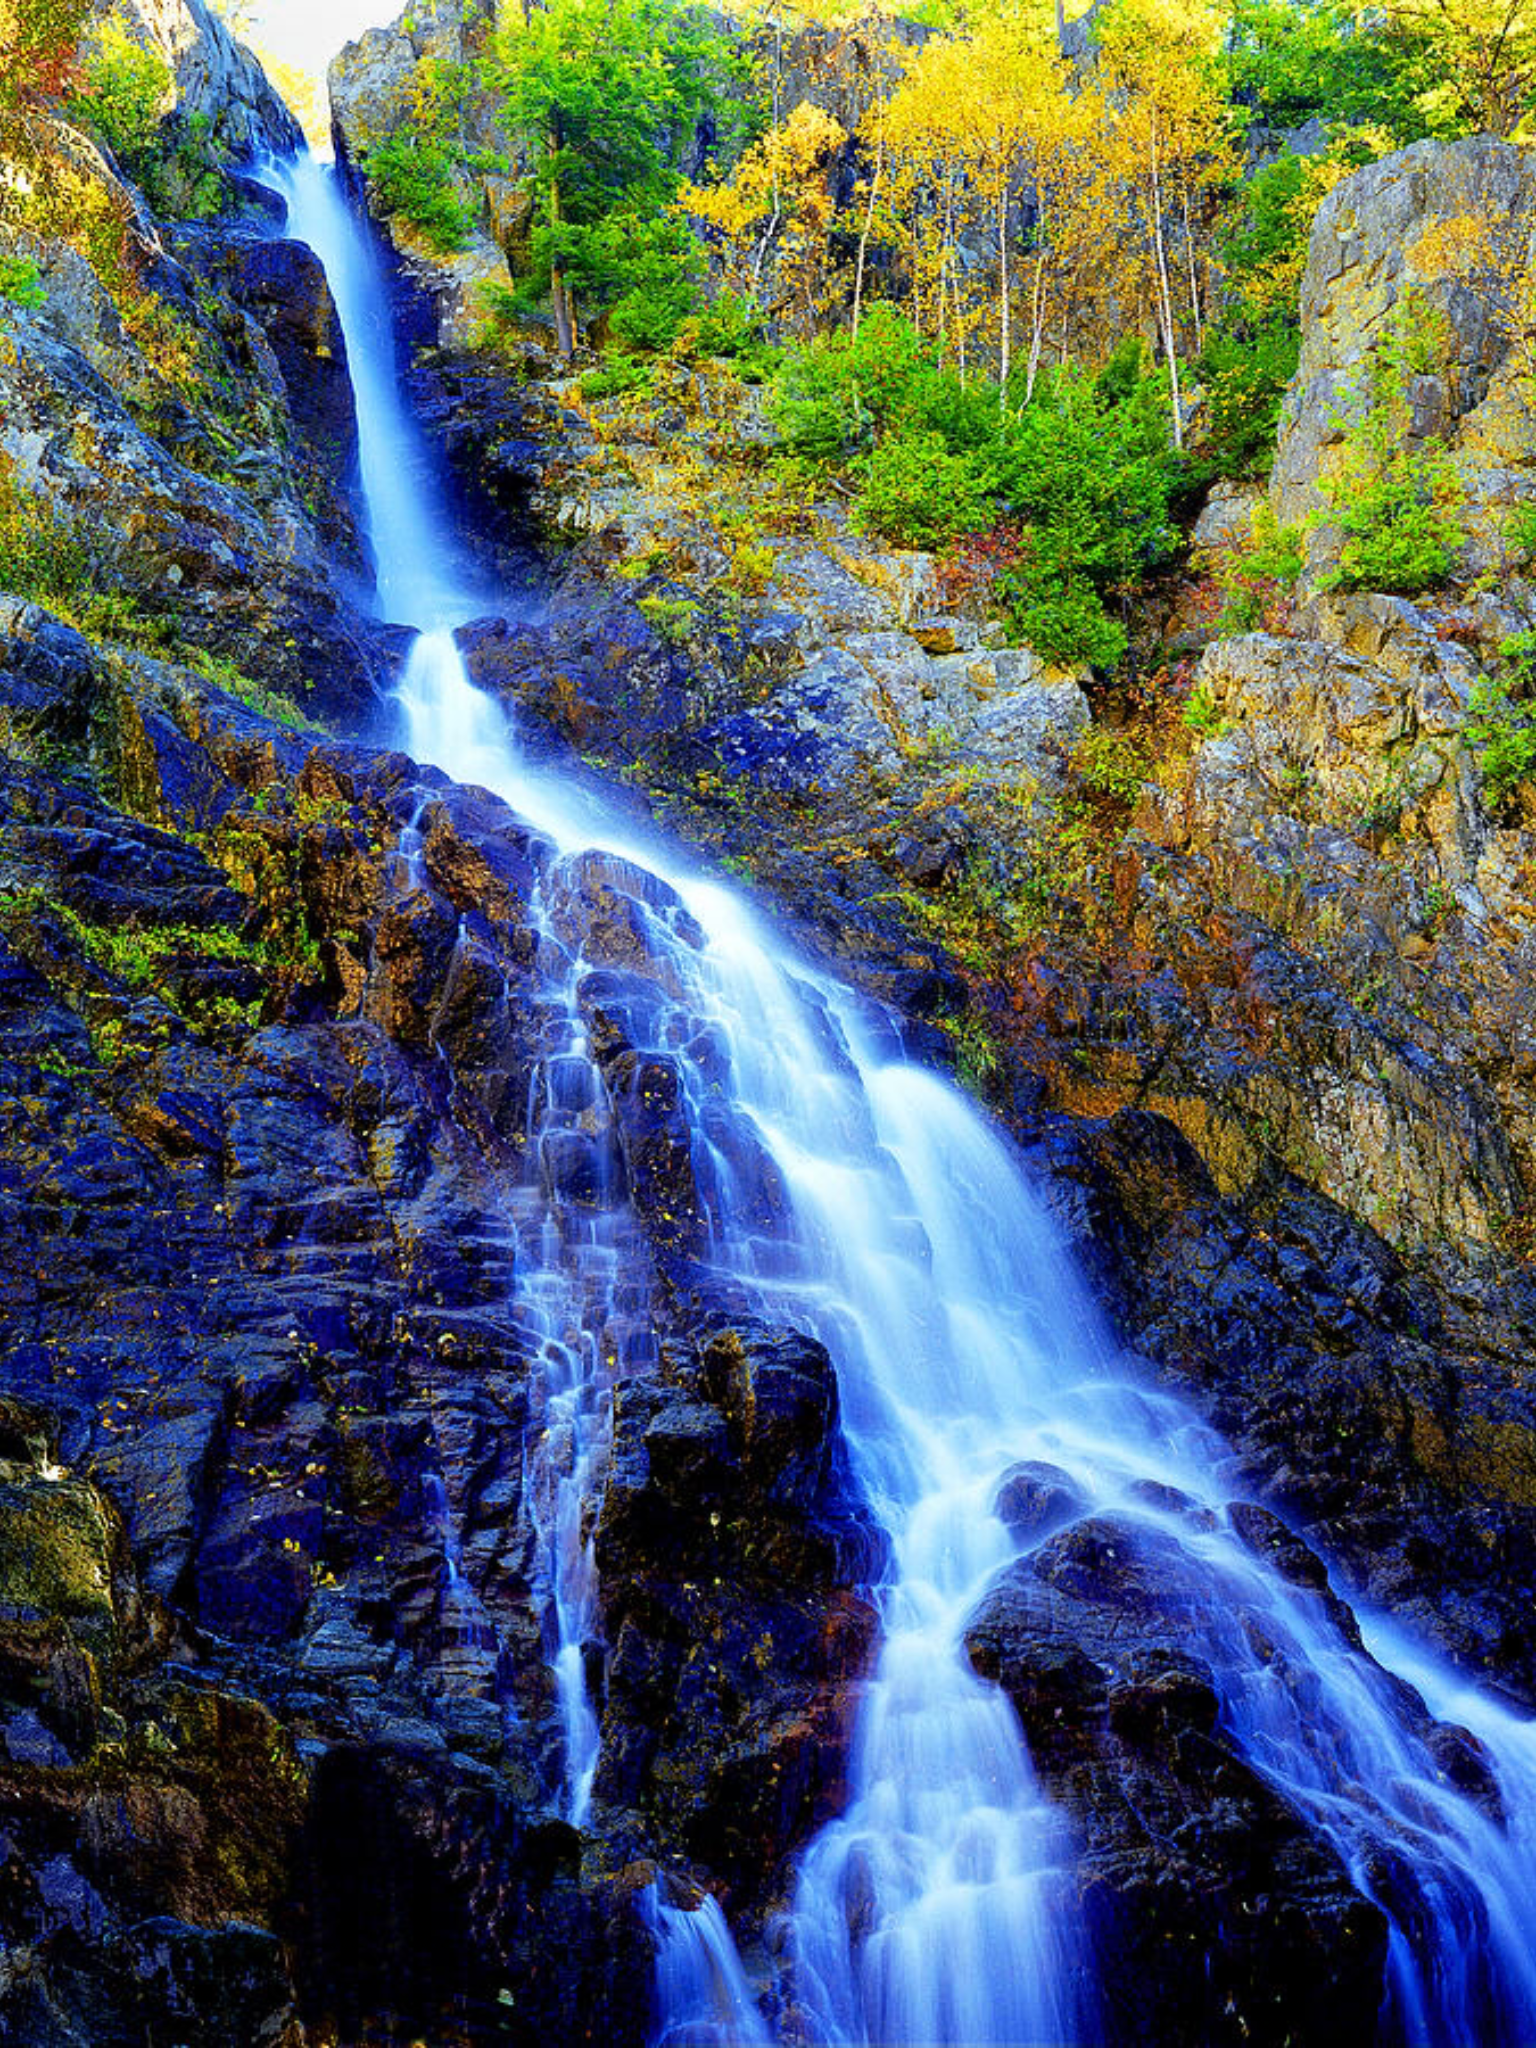 Roaring Brook Falls is a photograph by Frank Houck